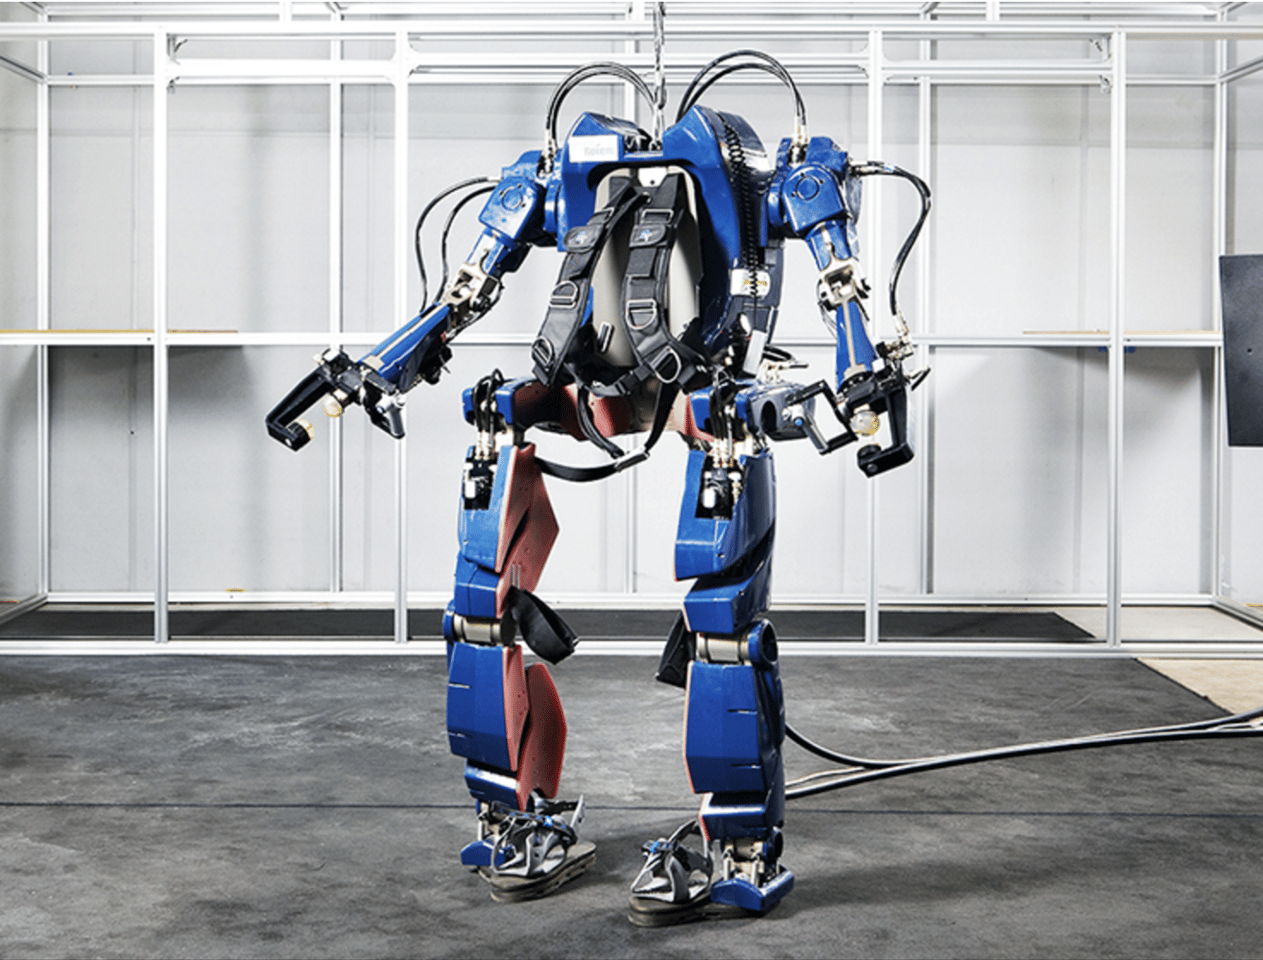 Hyundai's new exoskeleton looks pretty badass